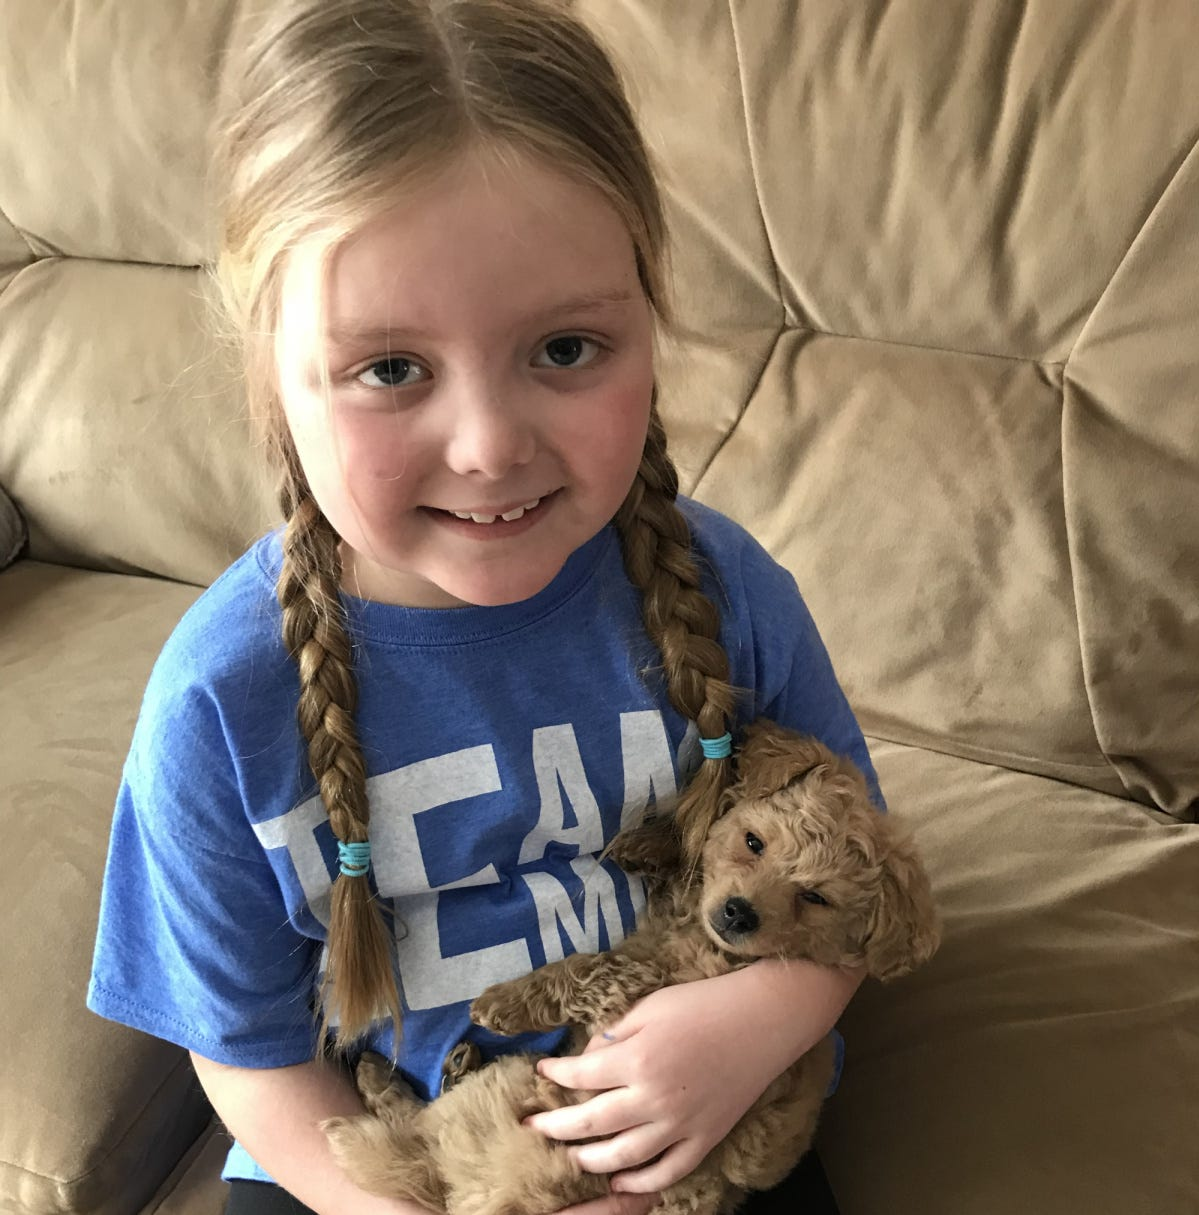 A terminally ill Hartland 7-year-old wanted a few dog pictures. She now has 50,000 — and counting.